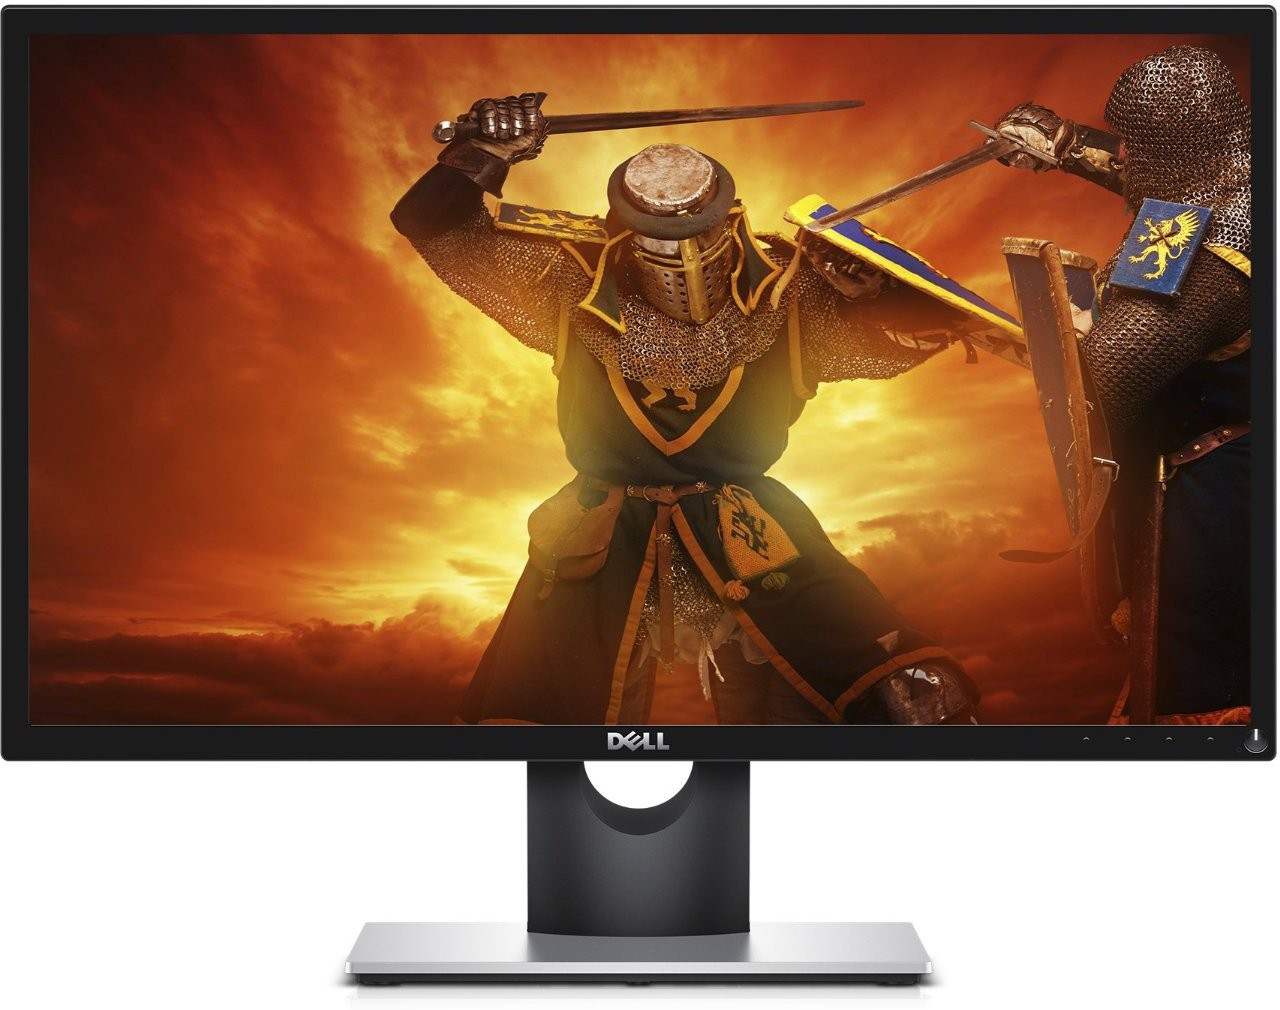 Deals - Hyderabad - Dell | Samsung <br> LED | LCD<br> Category - computers<br> Business - Flipkart.com